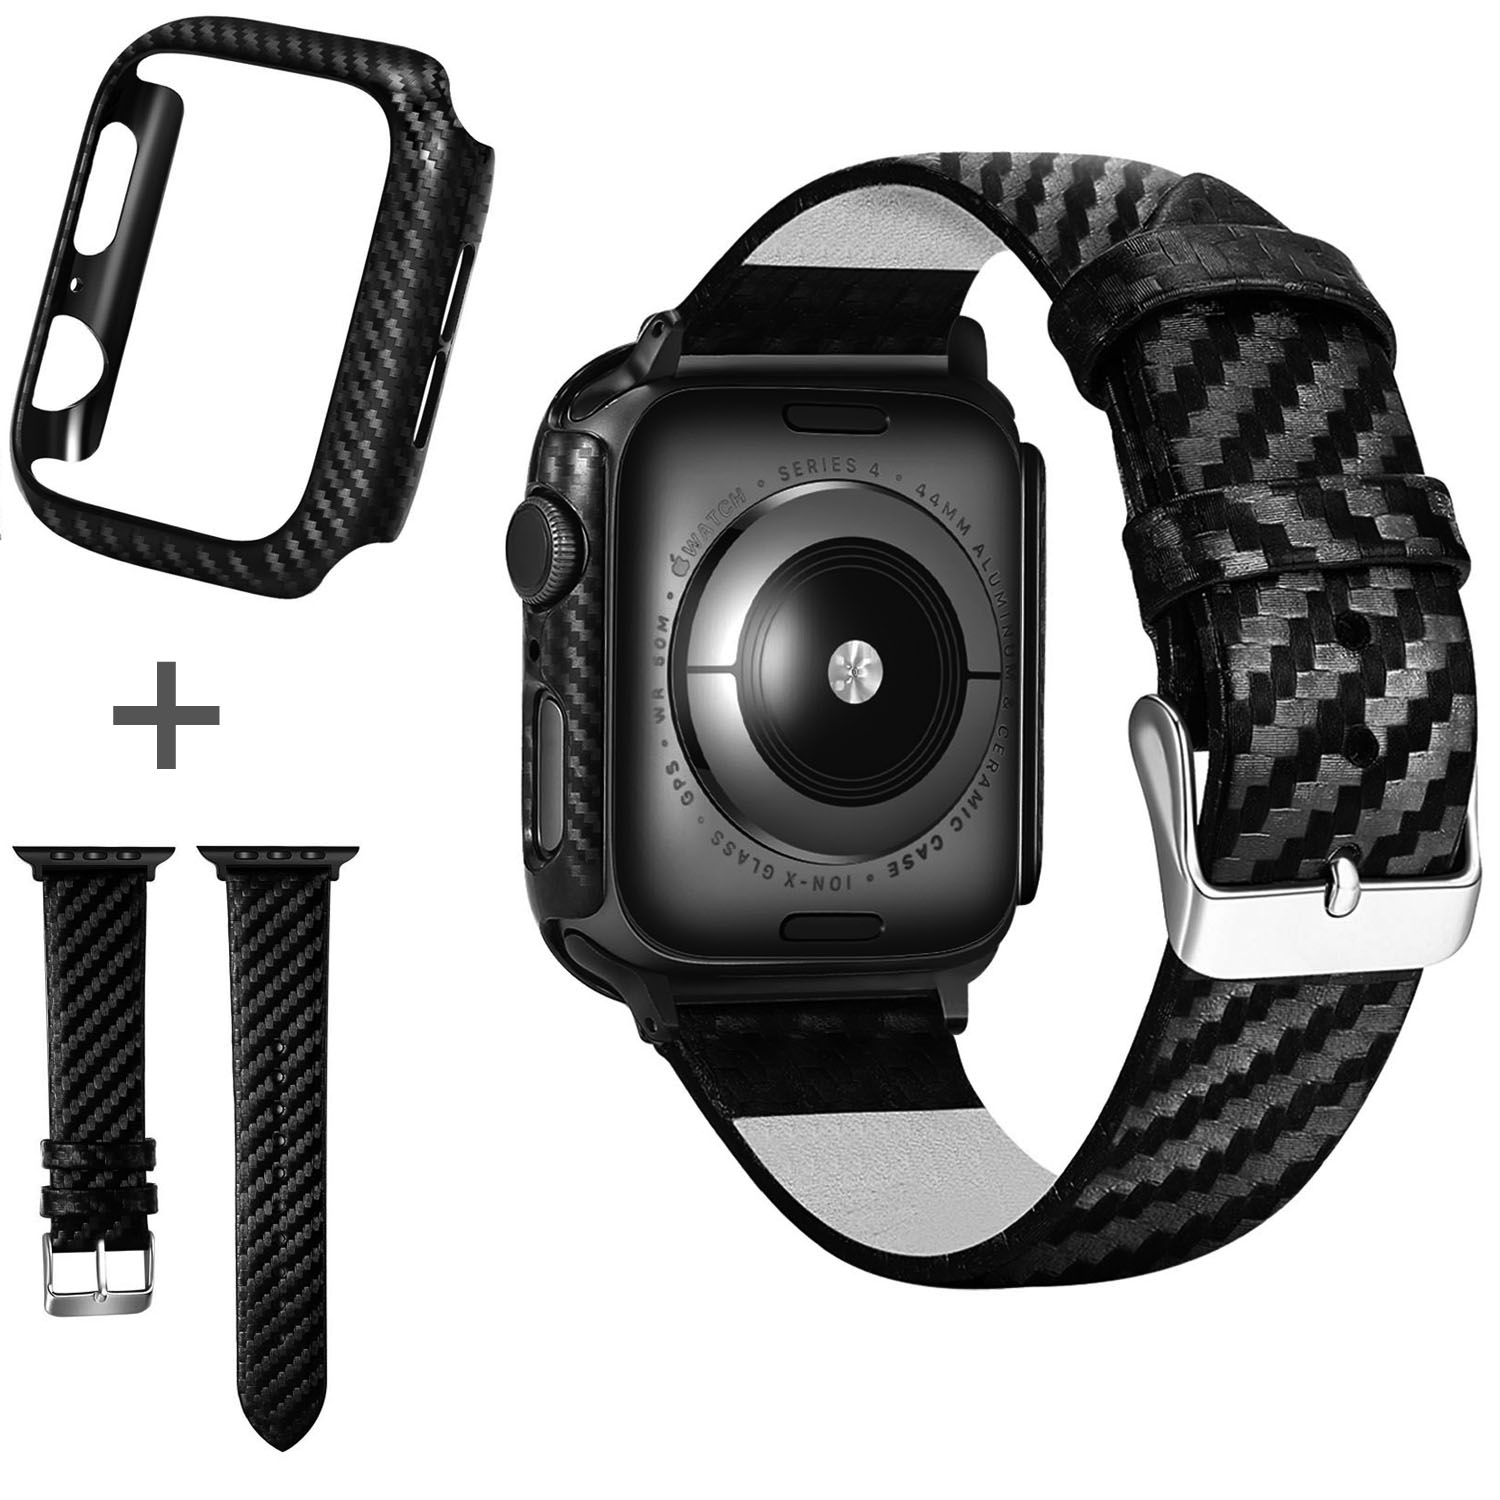 Black Carbon Protective Case For Apple Watch Bands 42mm 44mm 38mm 40mm Watch Covers Bumper for iWatch Series 5 4 3 2 1 Strap image